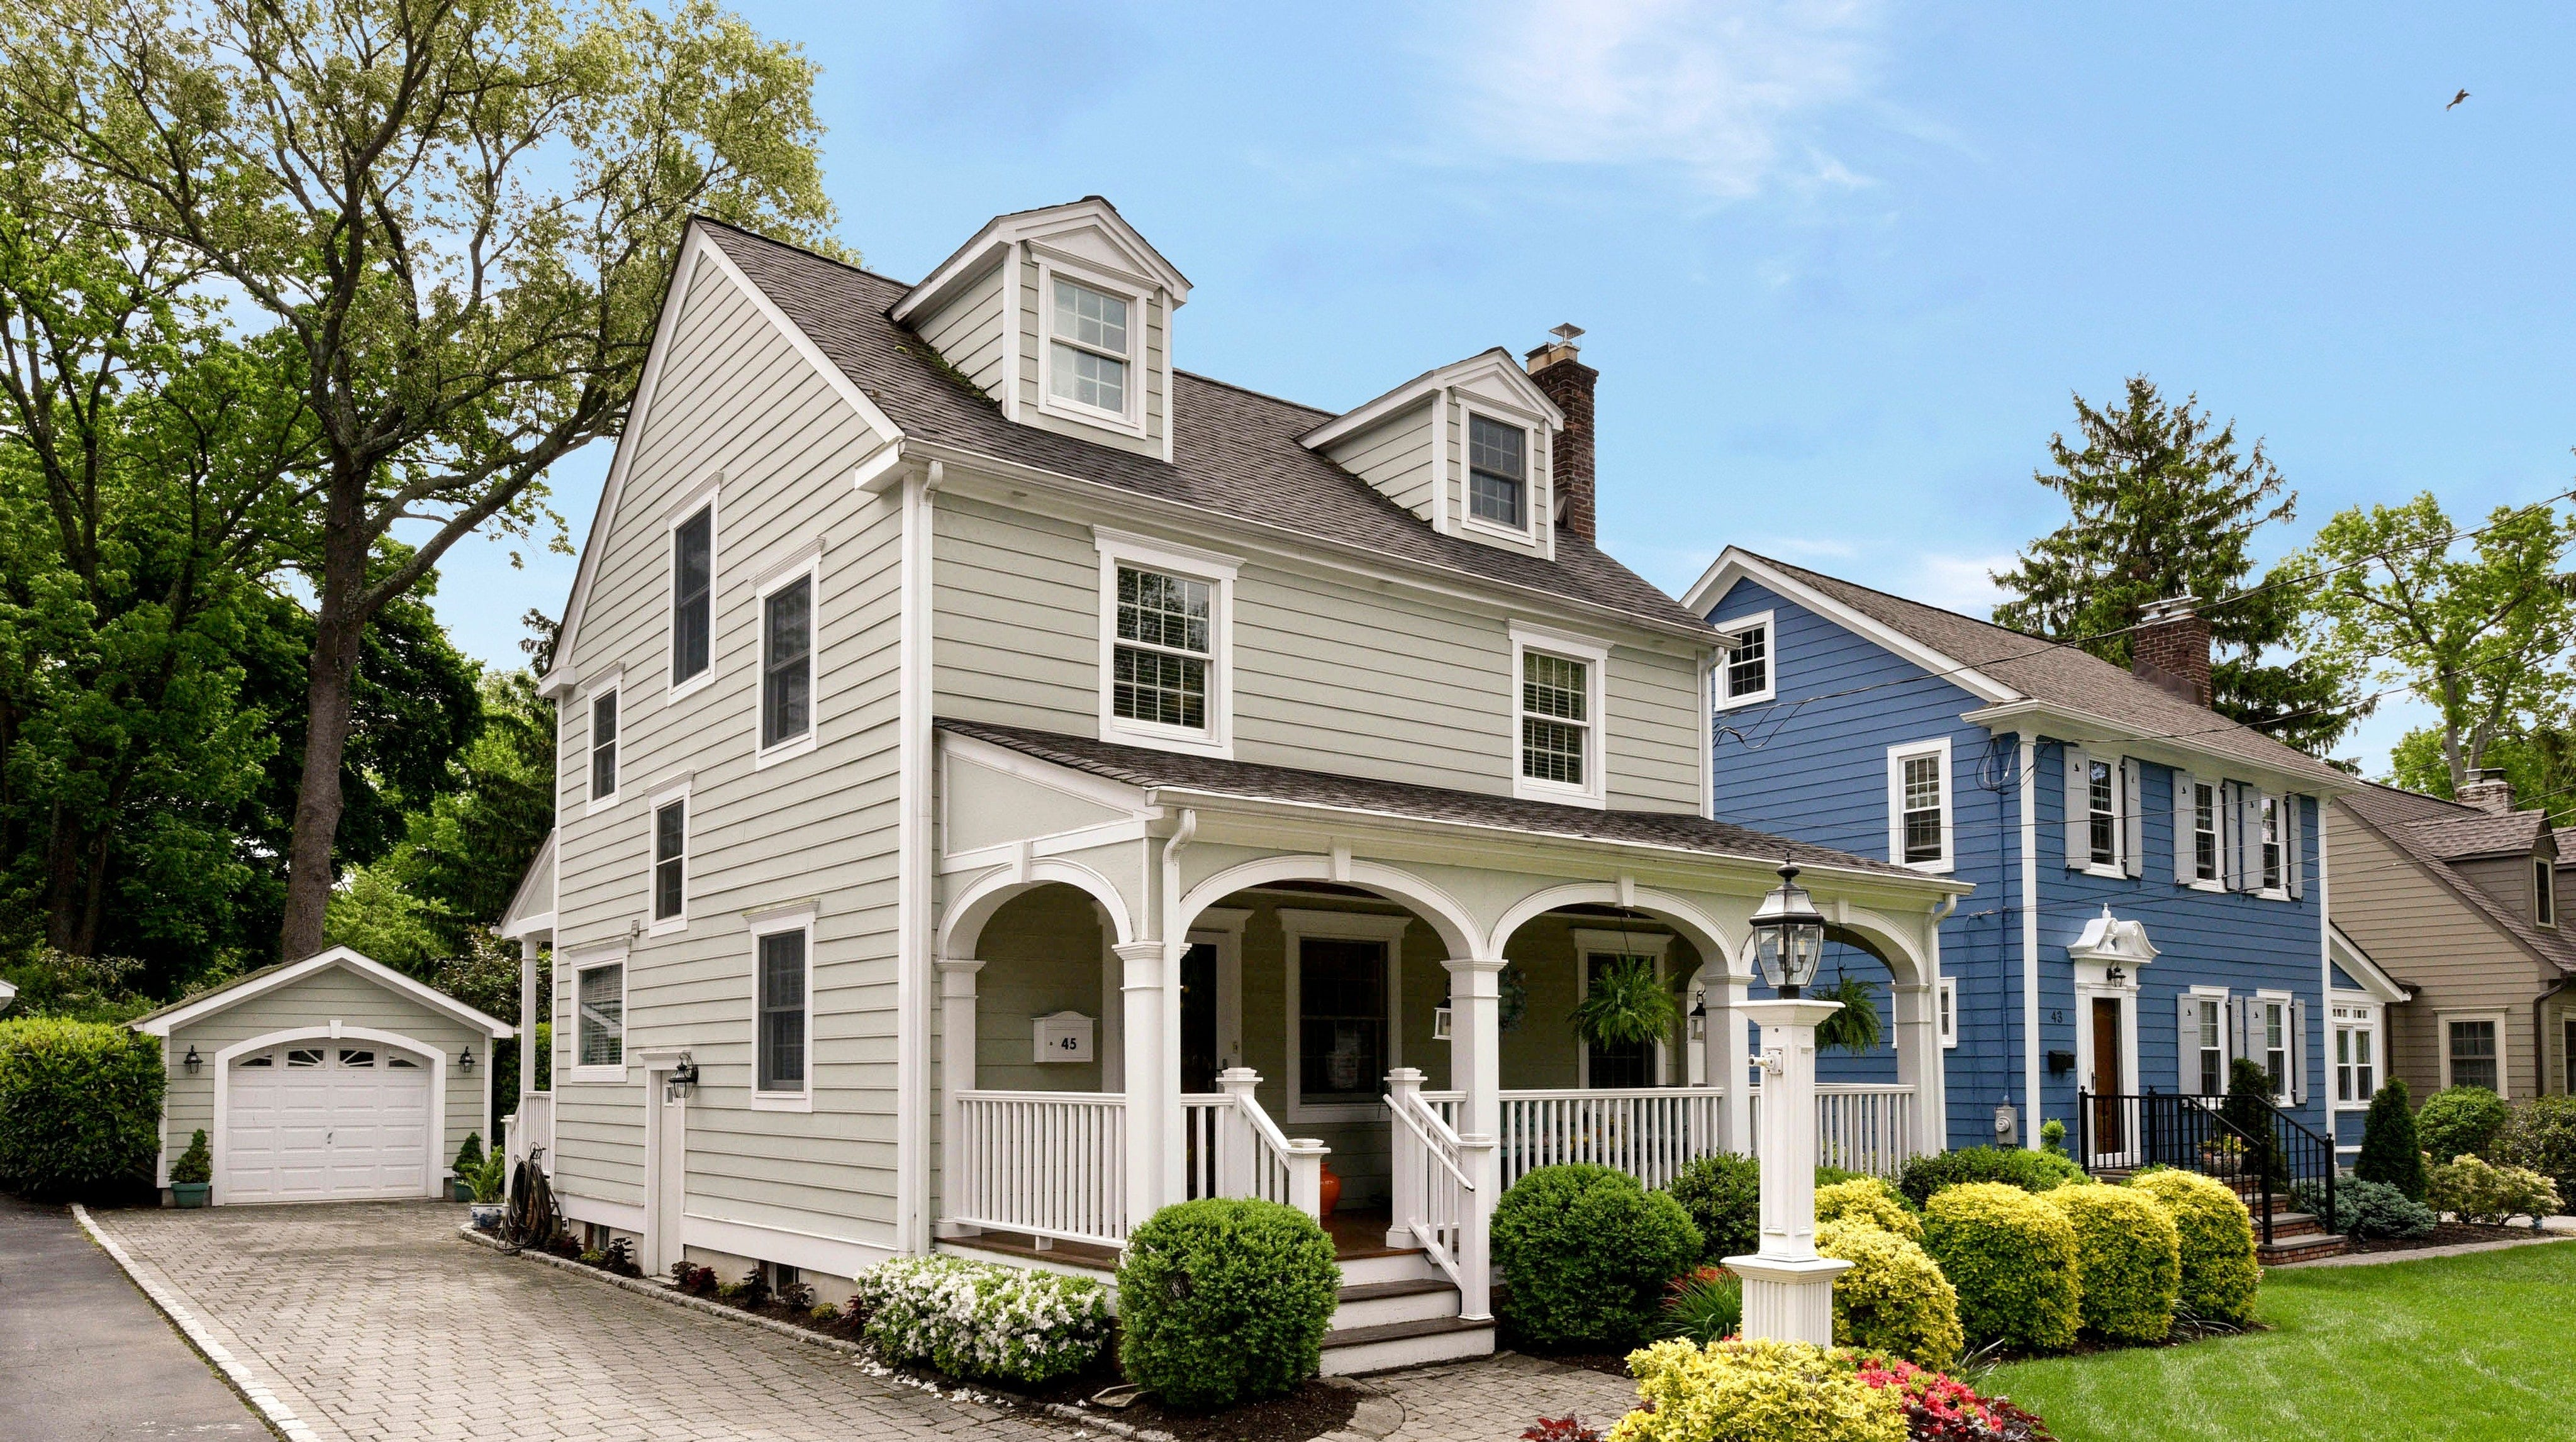 This four-bedroom home, thorougly renovated inside and out, has three levels of living in the Washington's Headquarters neighborhood of Morris Township.